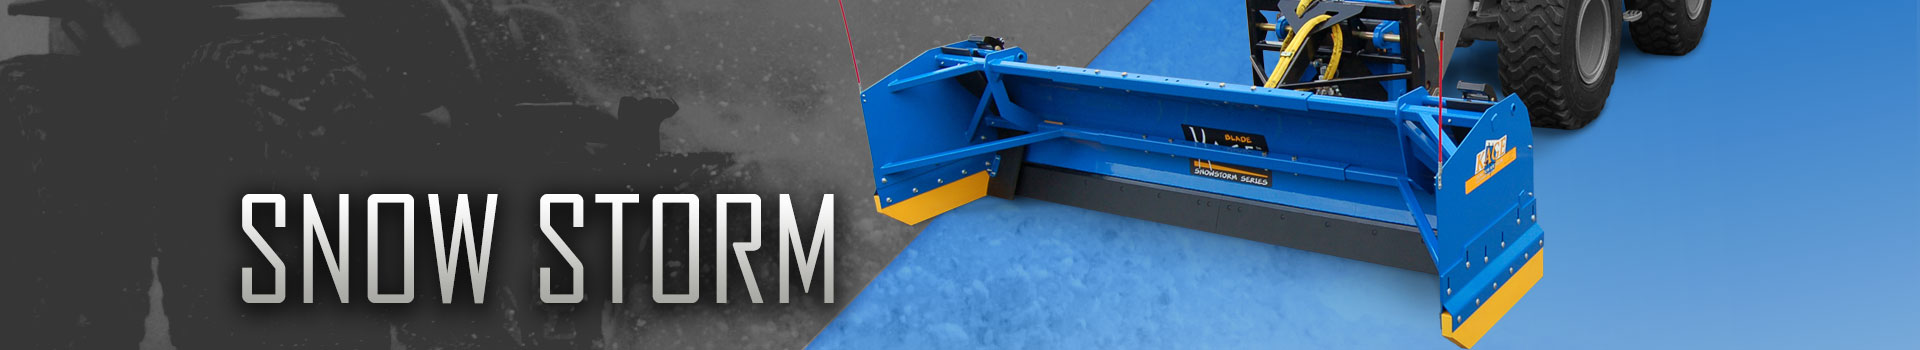 SnowStorm Plow System